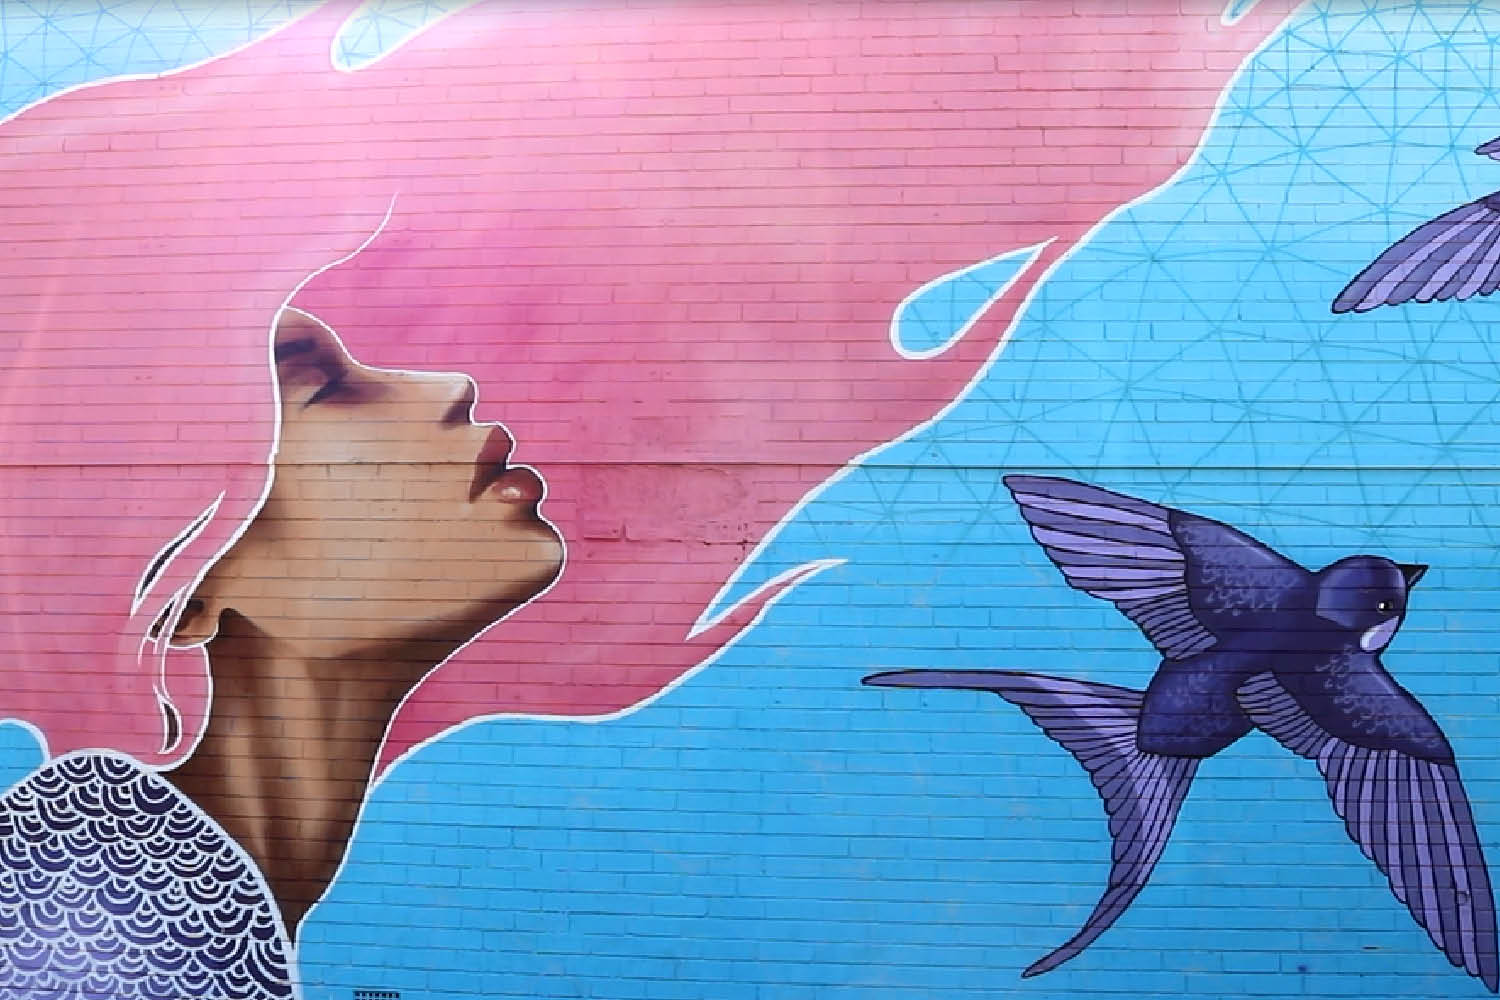 Sarah McCloskey Street Art